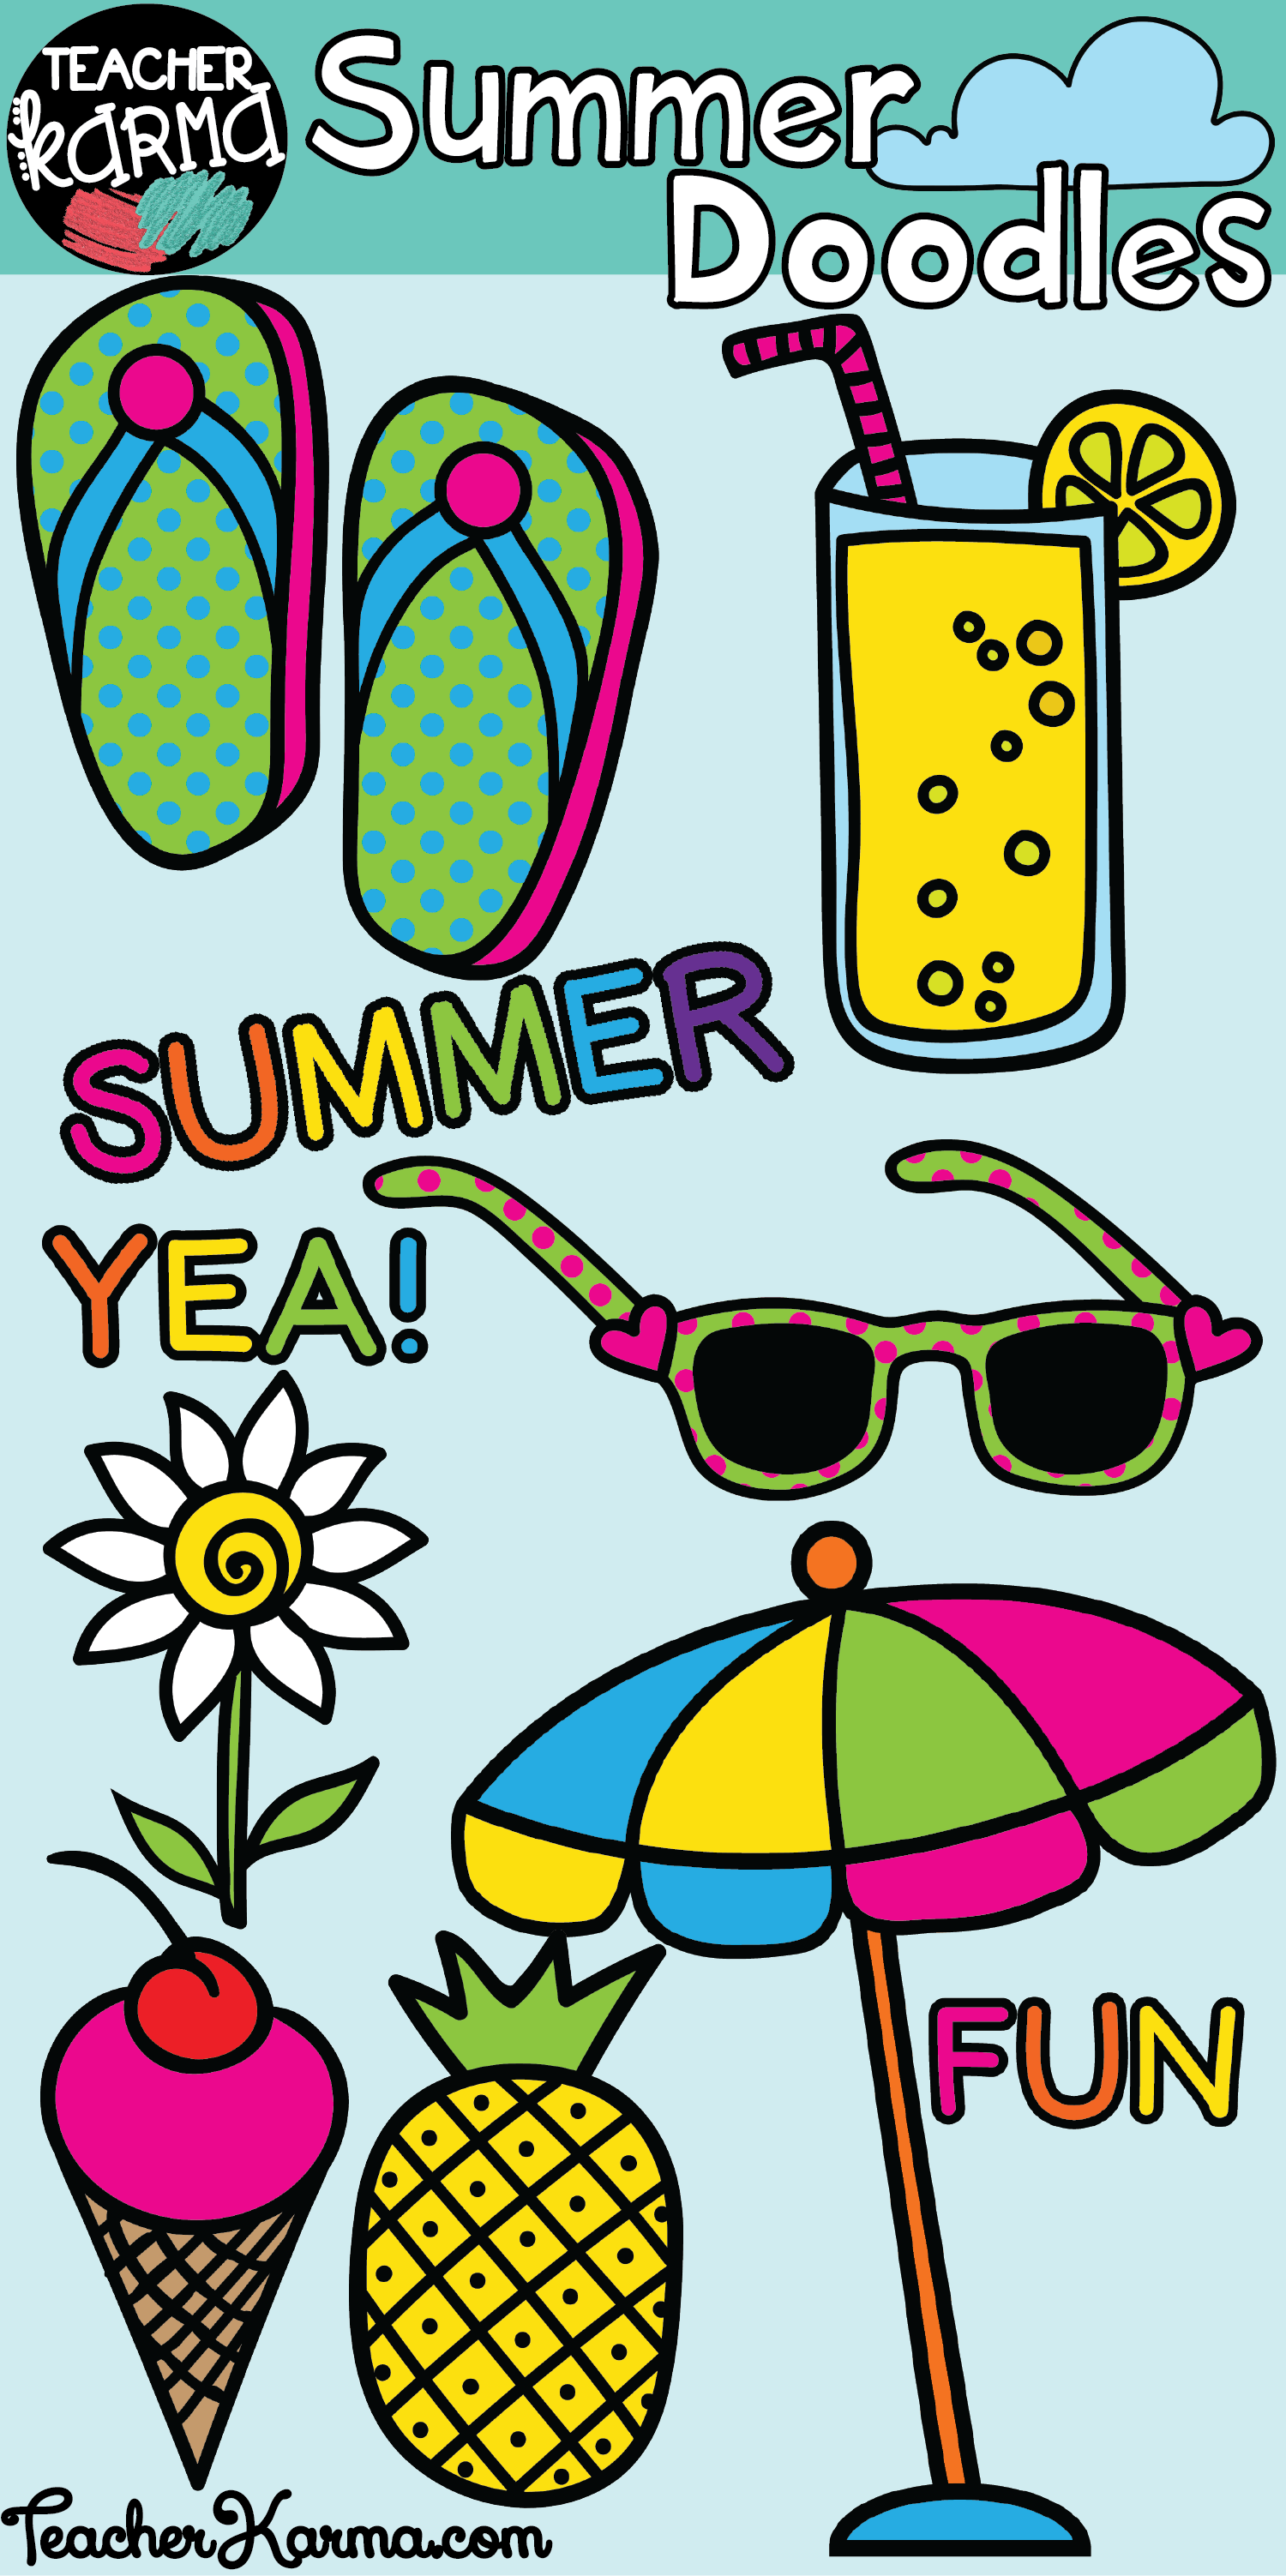 summer doodles clipart is perfect for classroom teachers and teachers pay teachers sellers works great for end of year activities teacherkarma com [ 1500 x 3005 Pixel ]